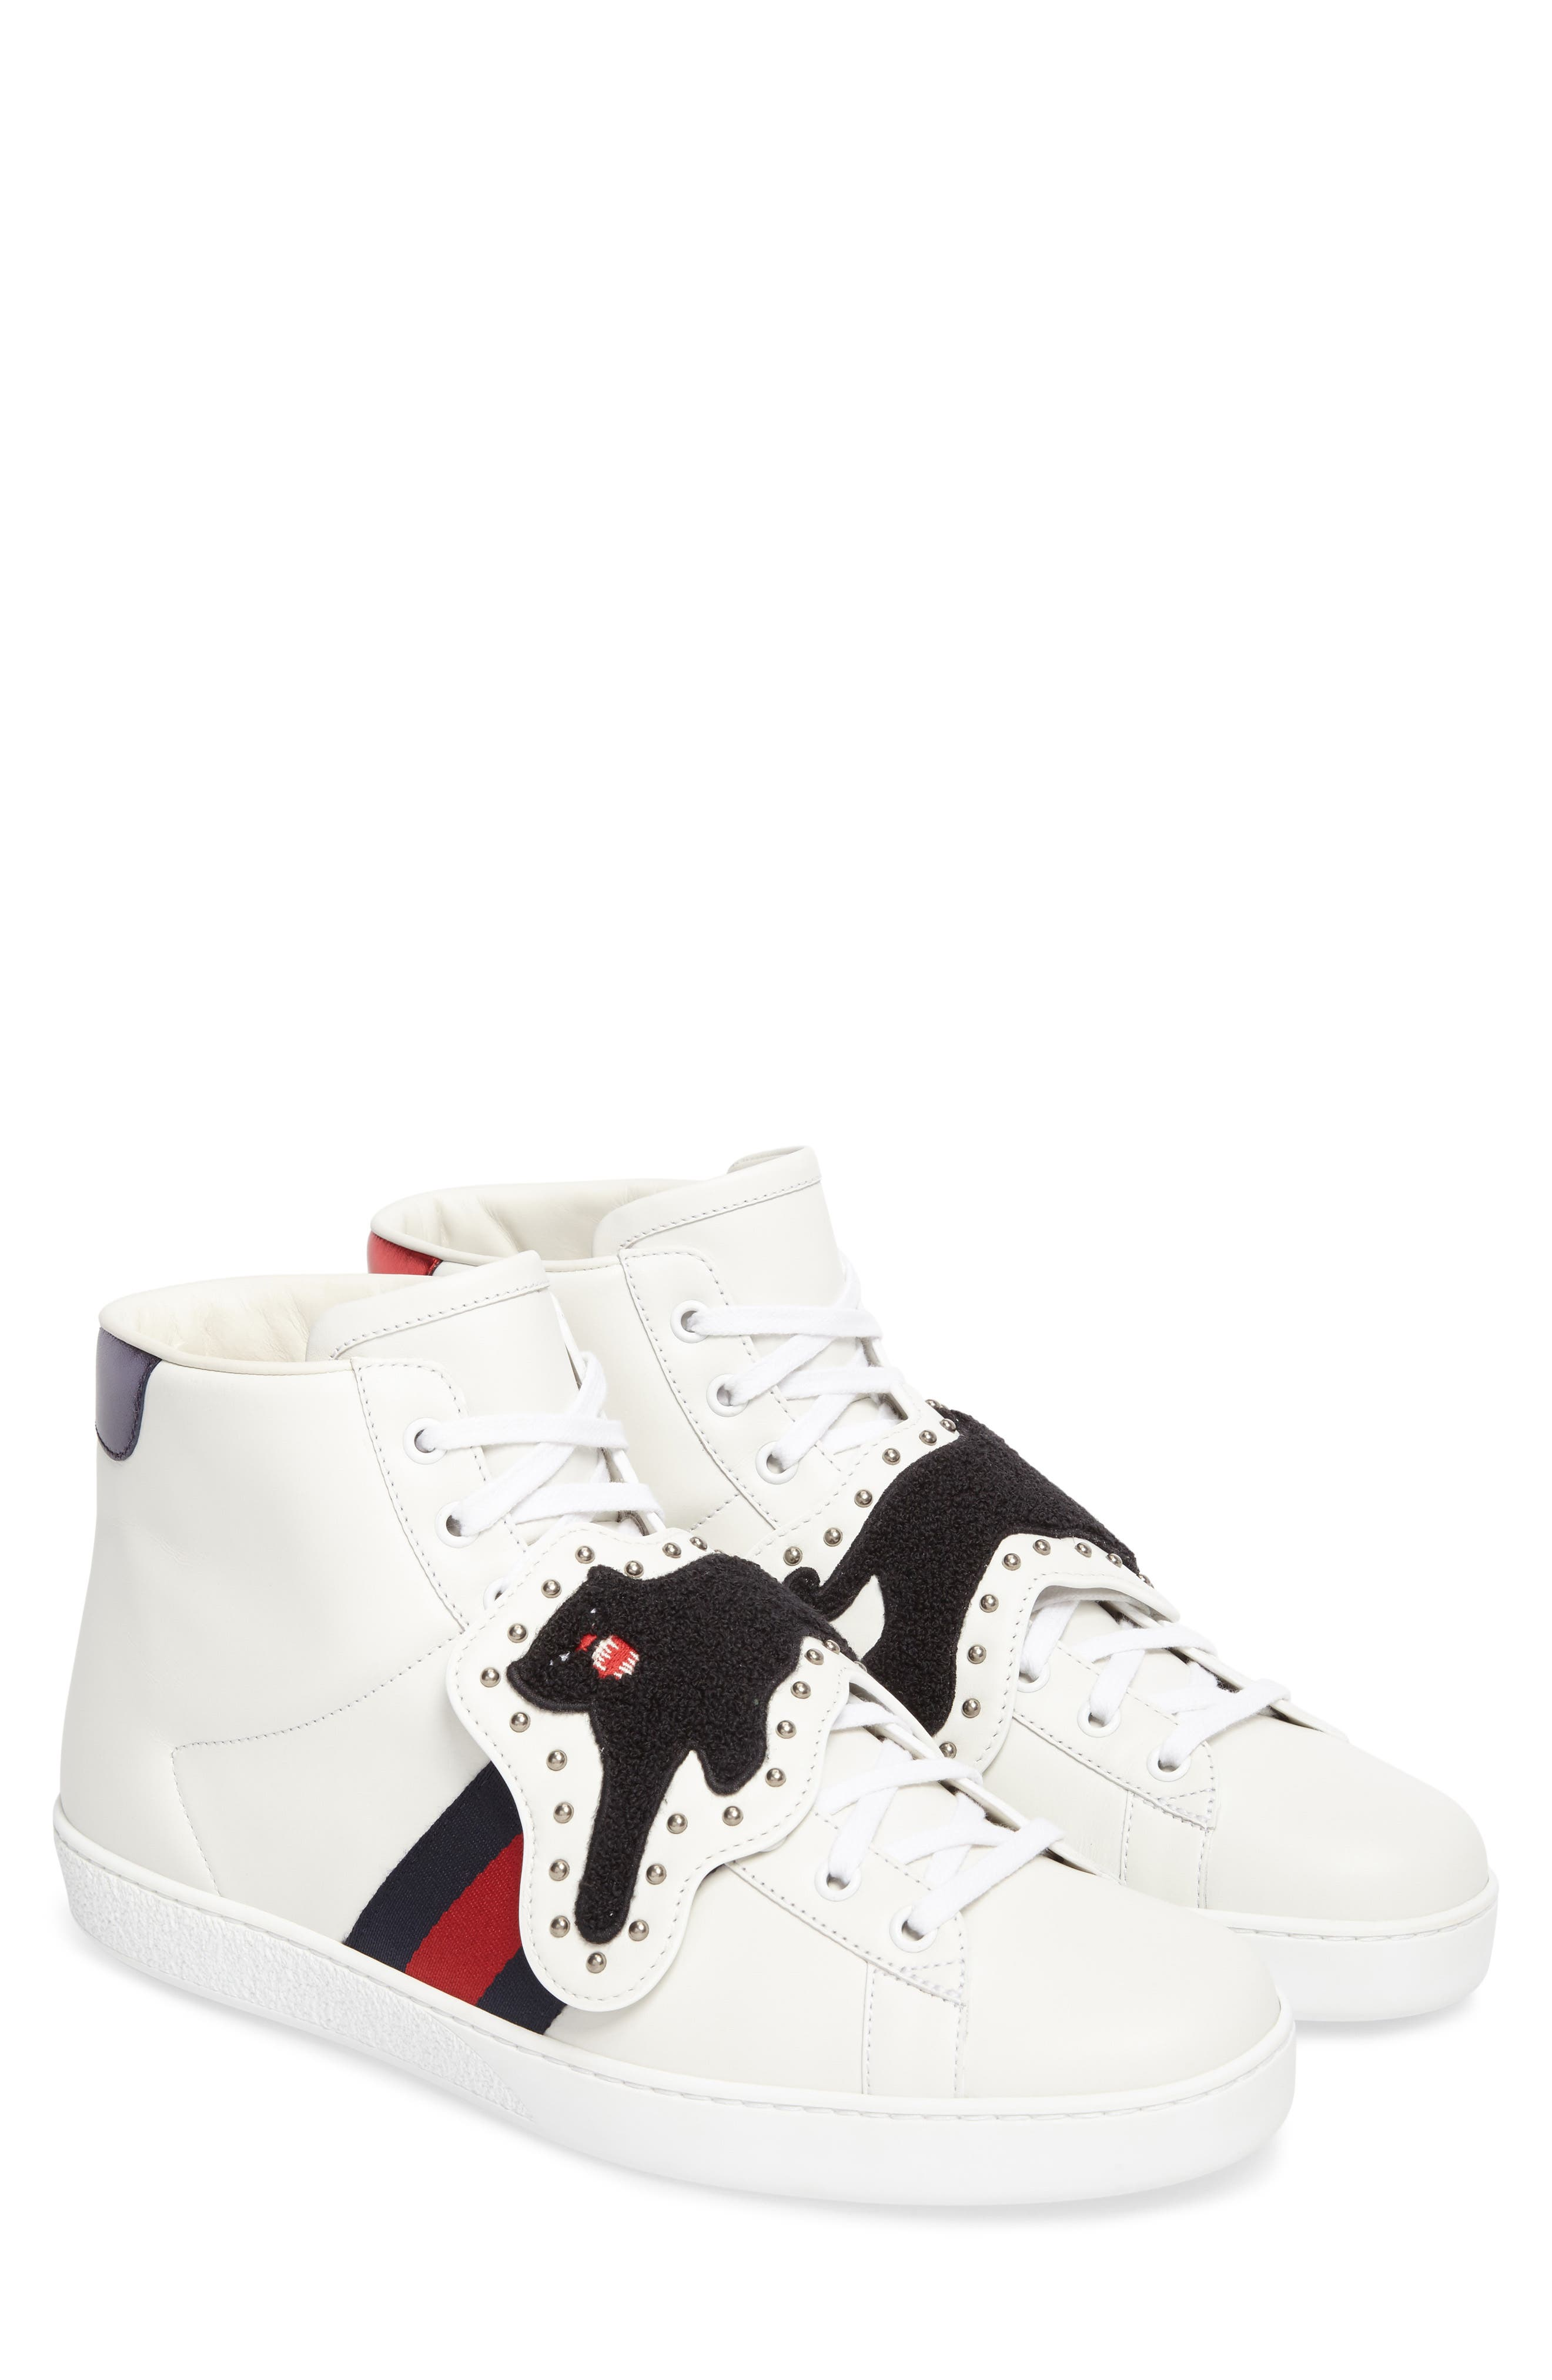 Alternate Image 1 Selected - Gucci New Ace Hi Panther Sneaker (Men)